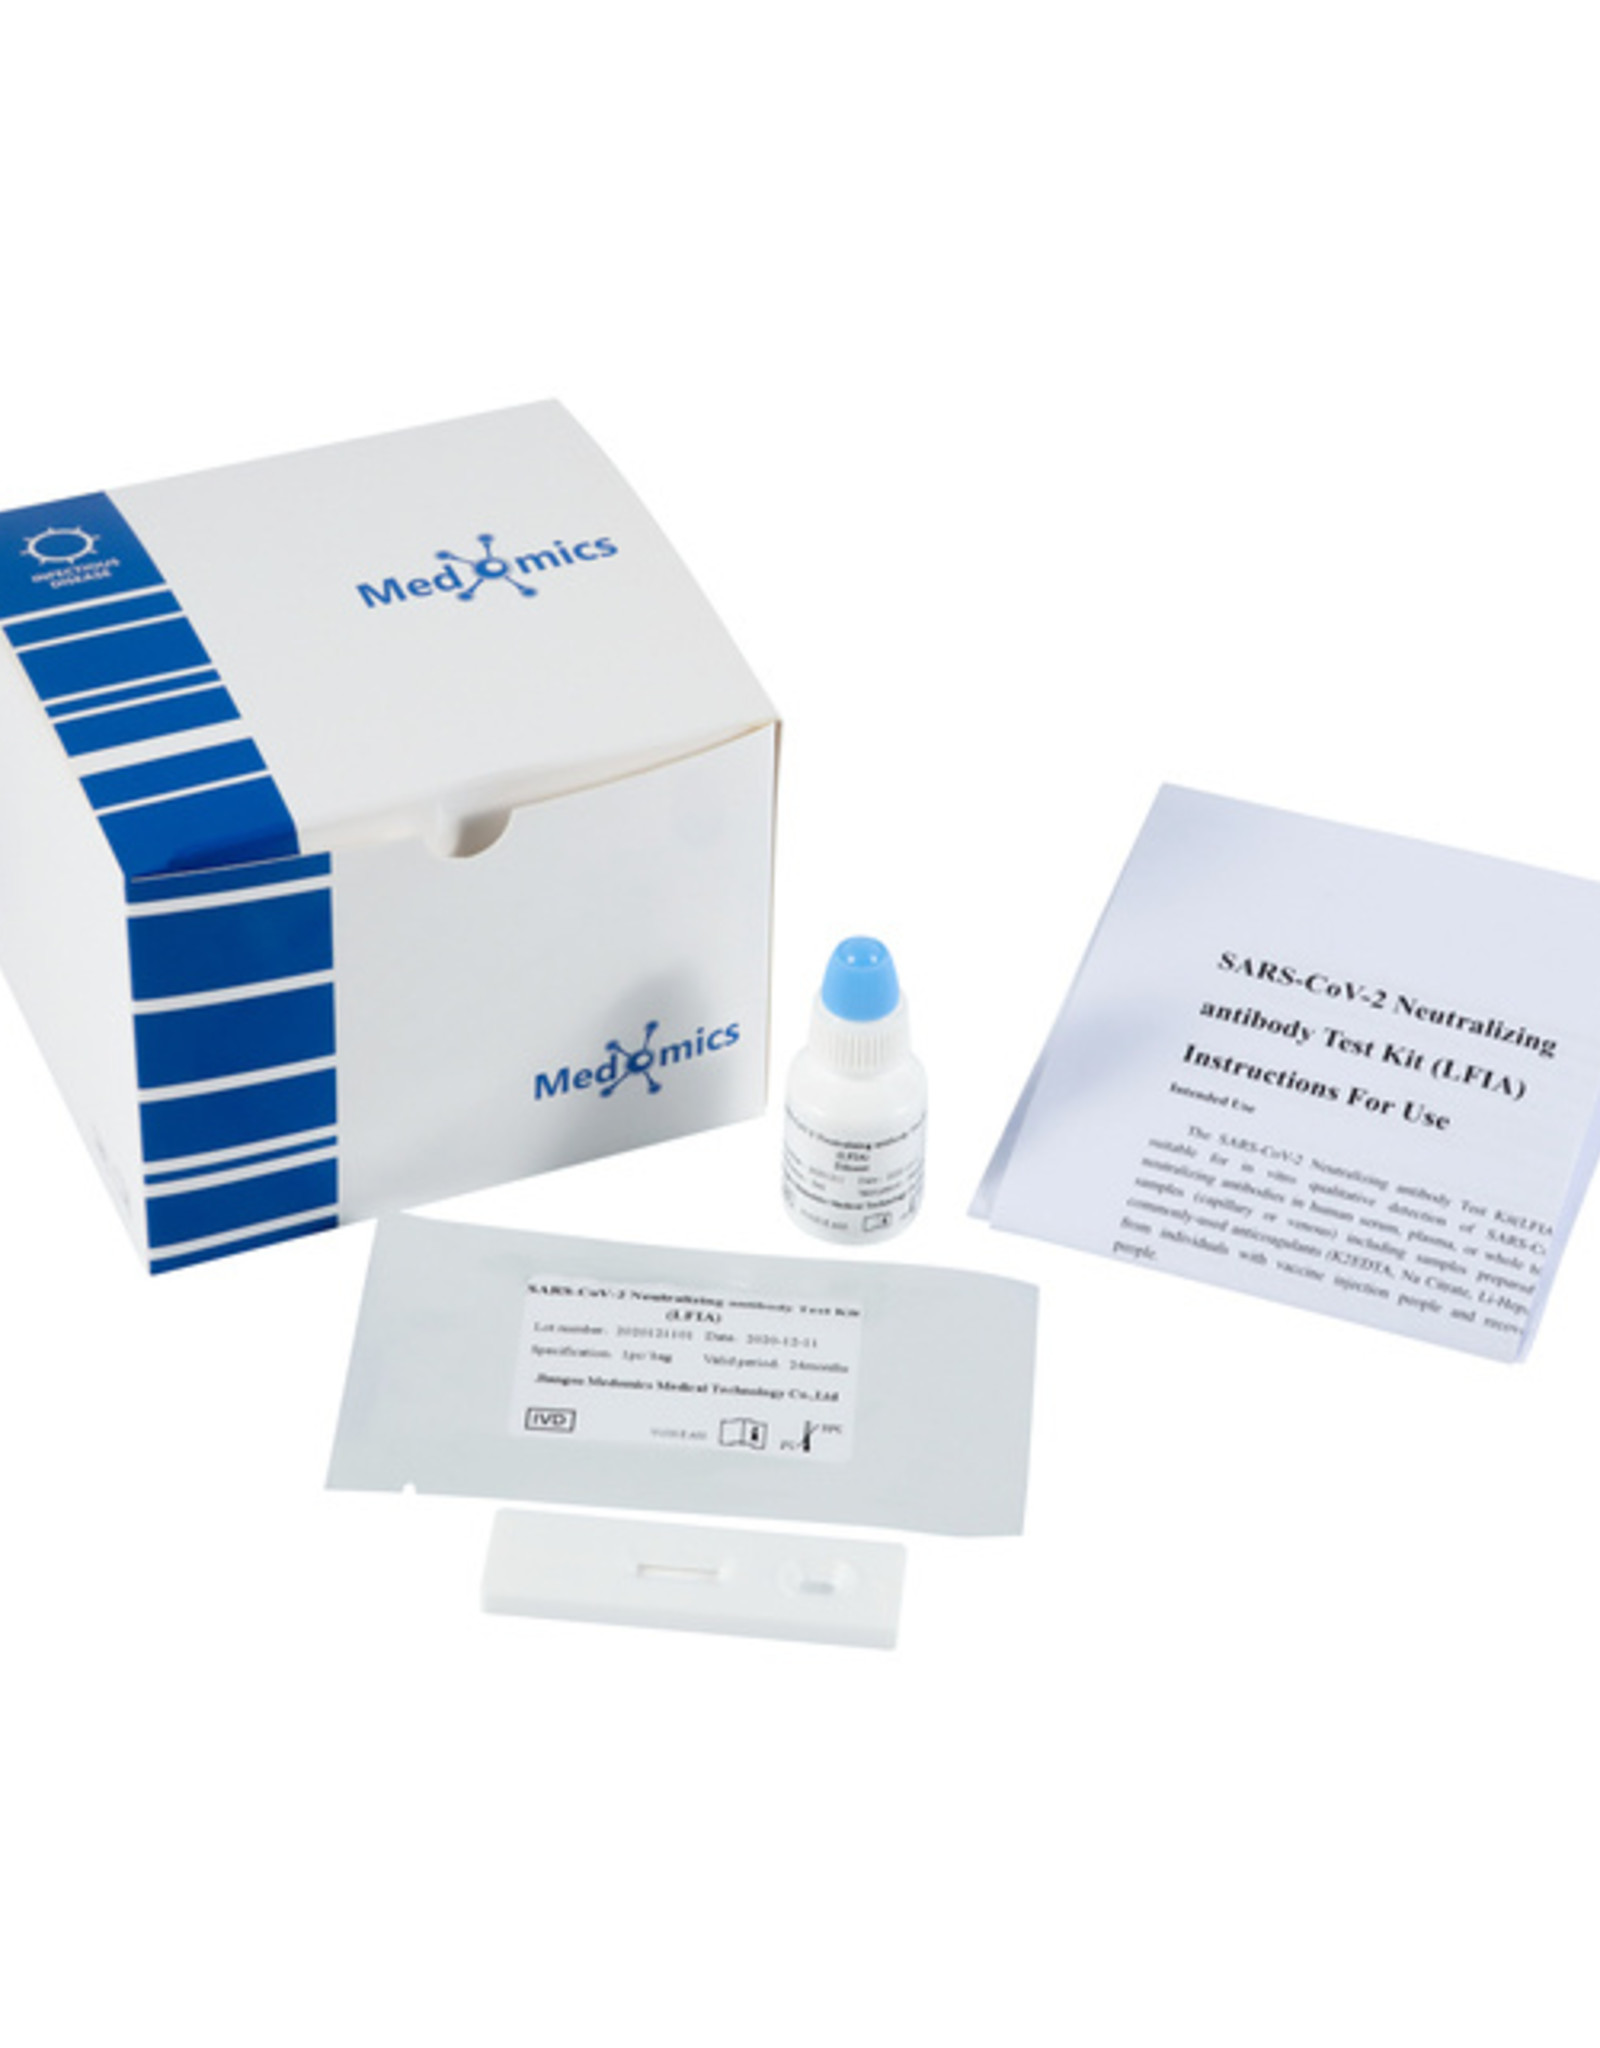 SARS-CoV-2 Neutralizing Antibody Test Kit (LFIA) - 20 tests